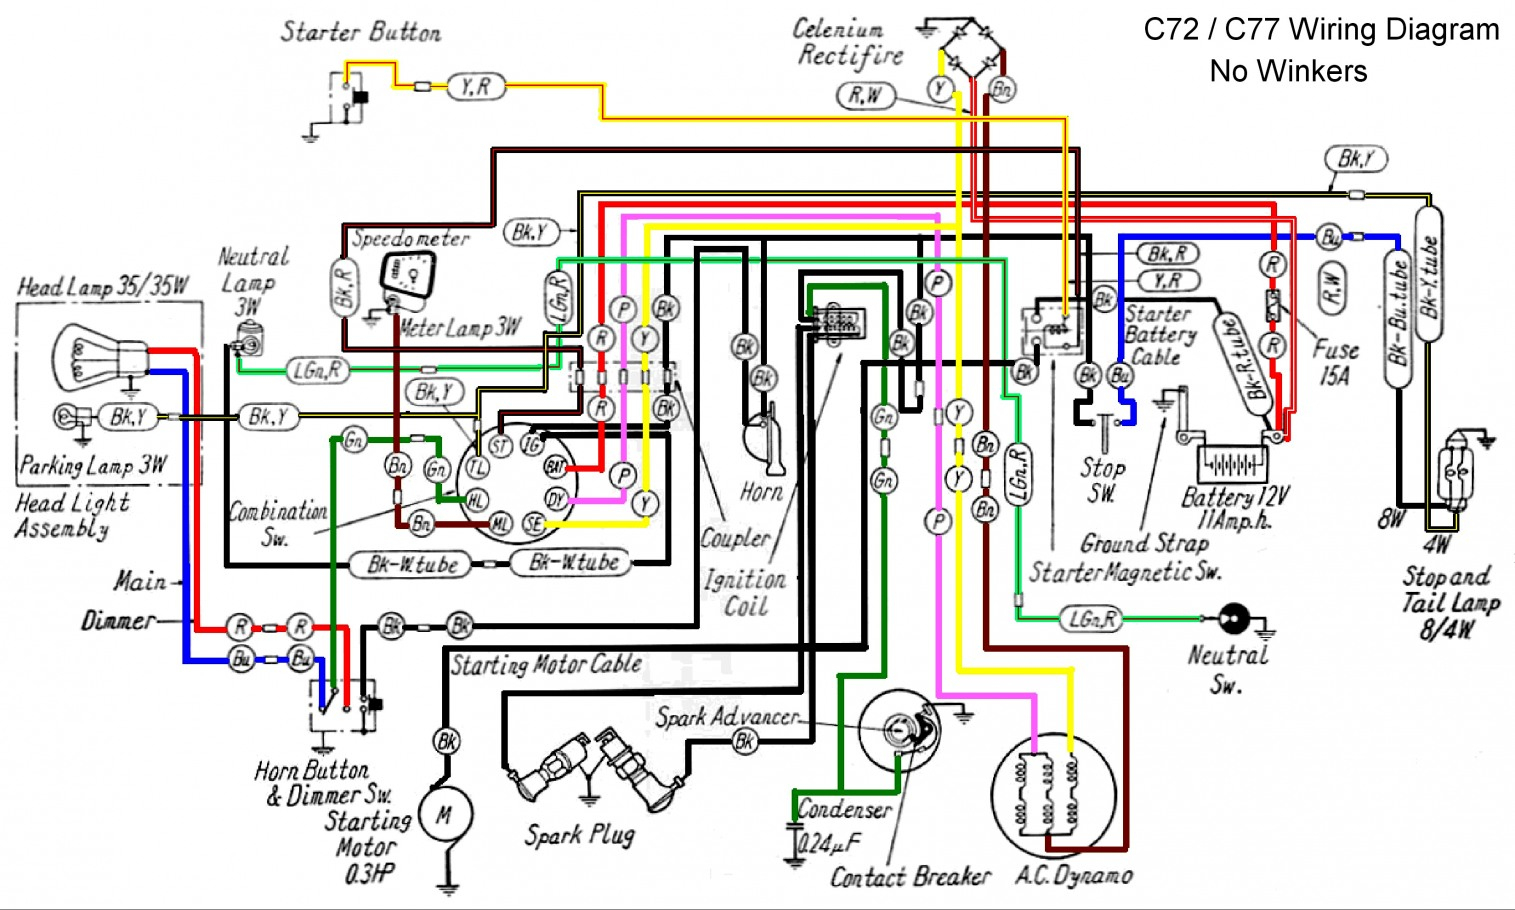 4L80E Transmission External Wiring Diagram | Wiring Diagram - 4L80E Transmission Wiring Diagram